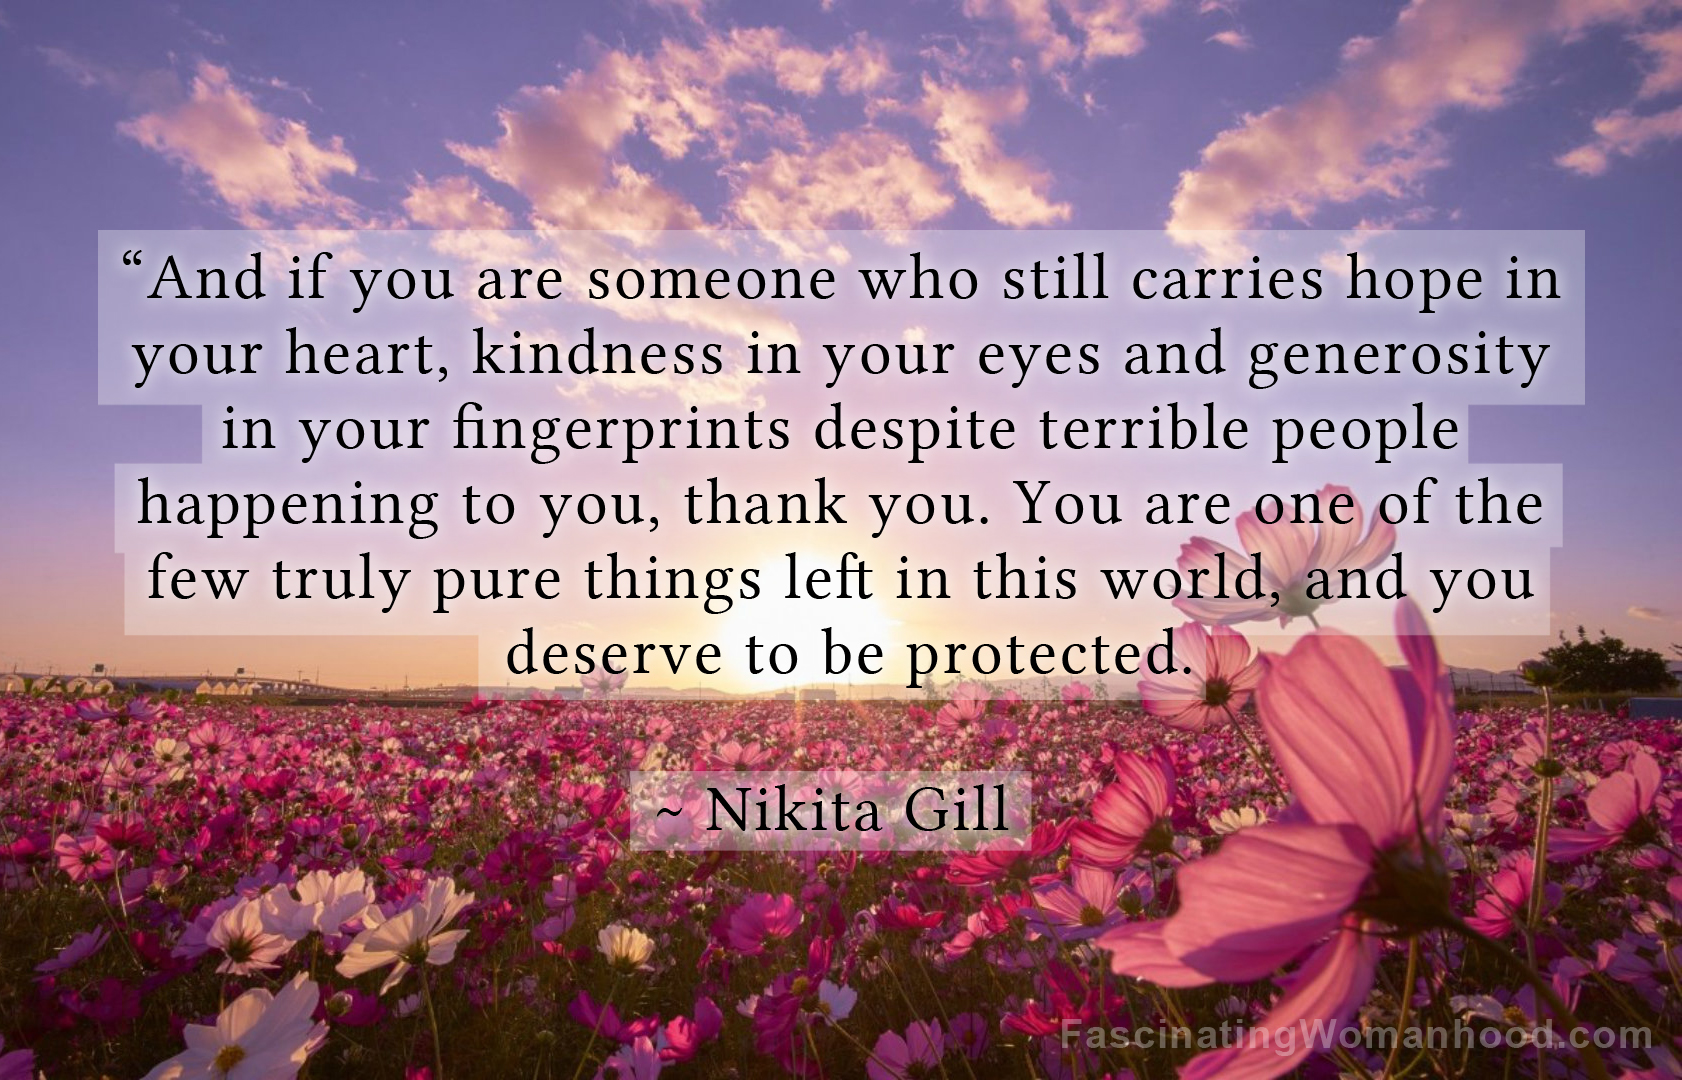 A Quote from Nikita Gill.jpg